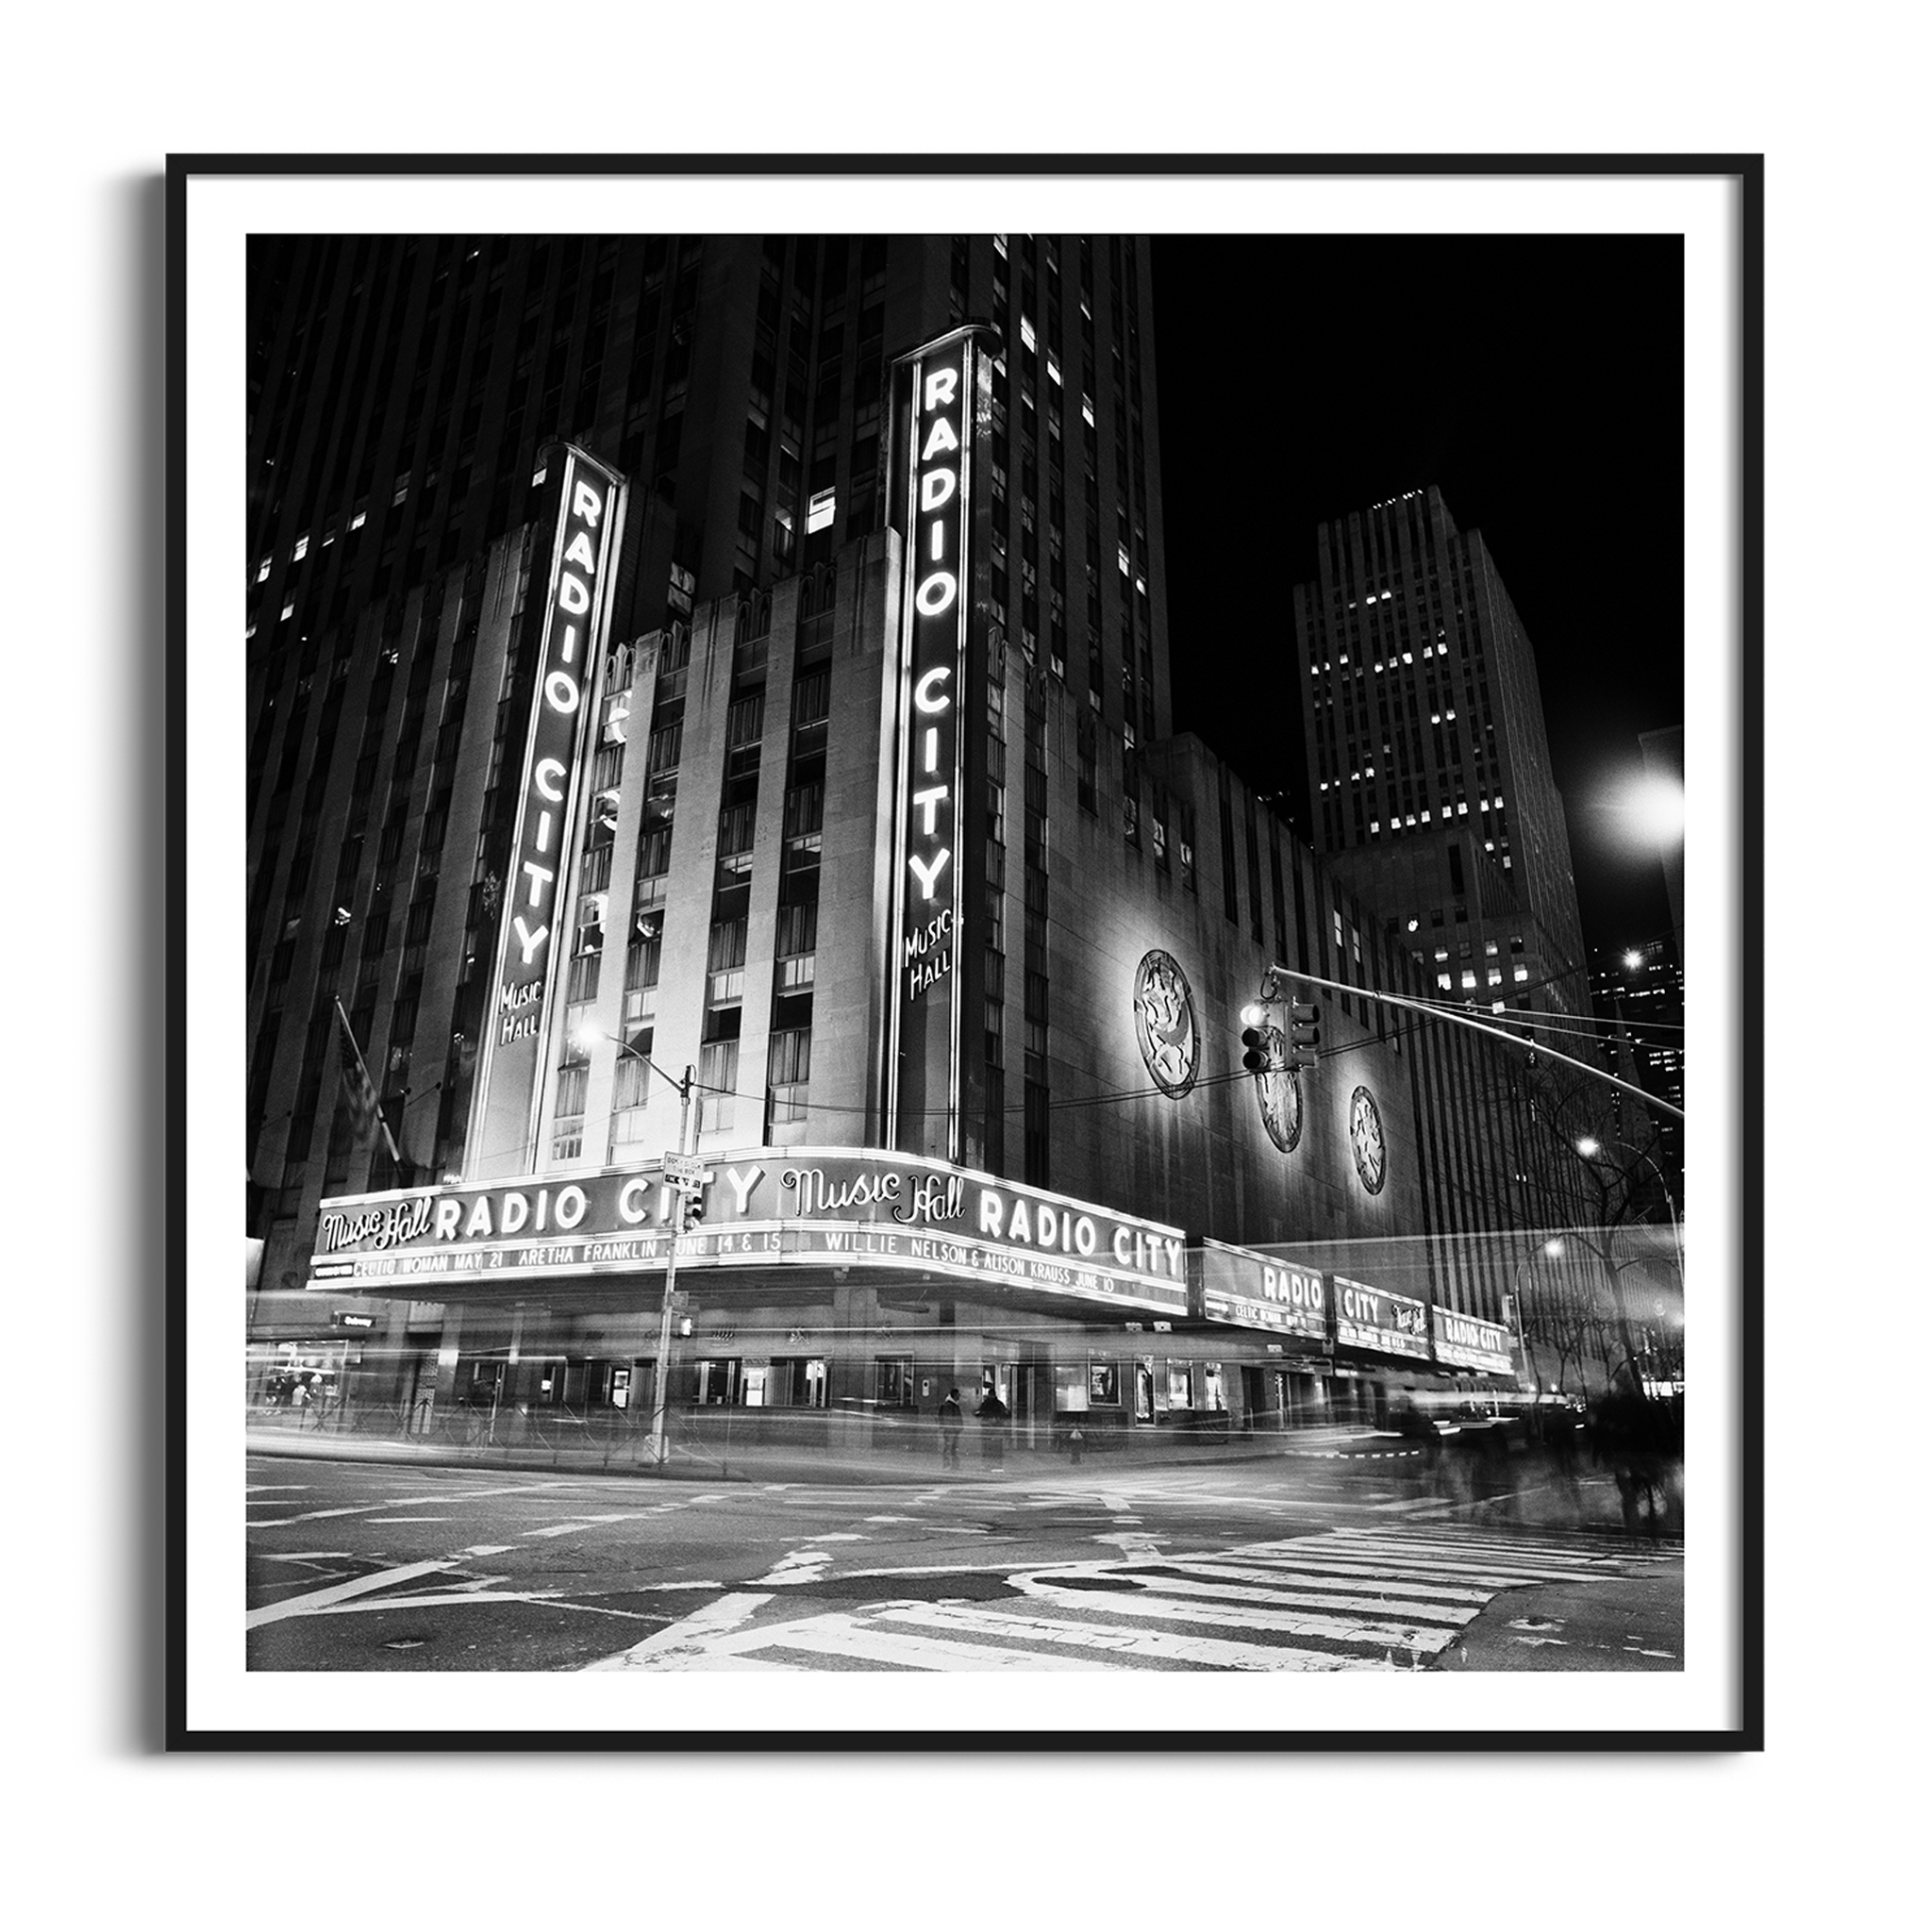 Radio City Music Hall by Night - black and white print with border in black frame